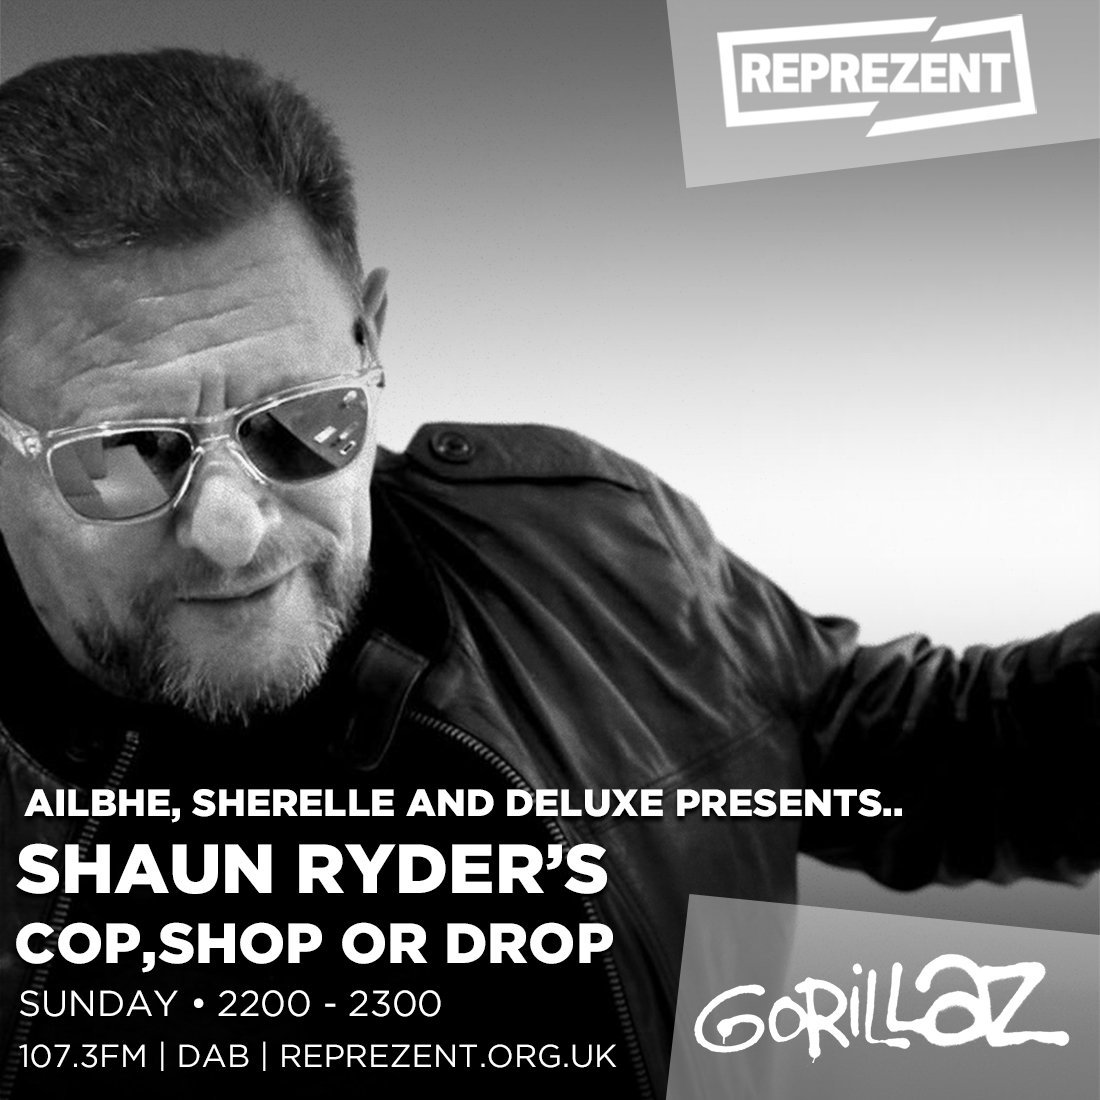 Ailbhe, Sherelle and Deluxe Presents.. Shaun Ryder's Cop, Shop or Drop